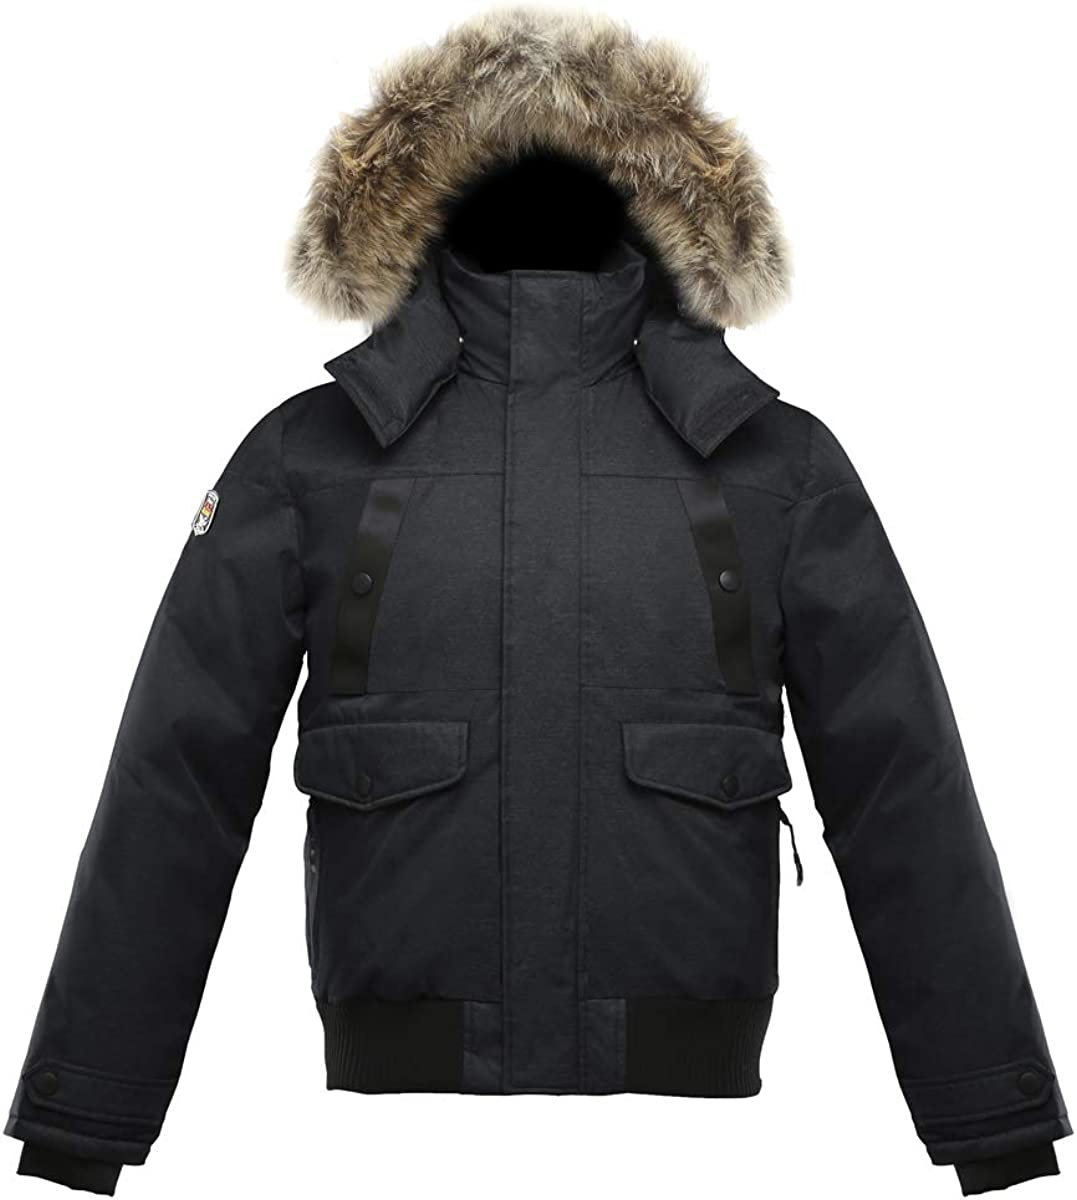 Triple F.A.T. Goose SAGA Collection Norden Hooded Max 58% OFF Mens D Fashionable